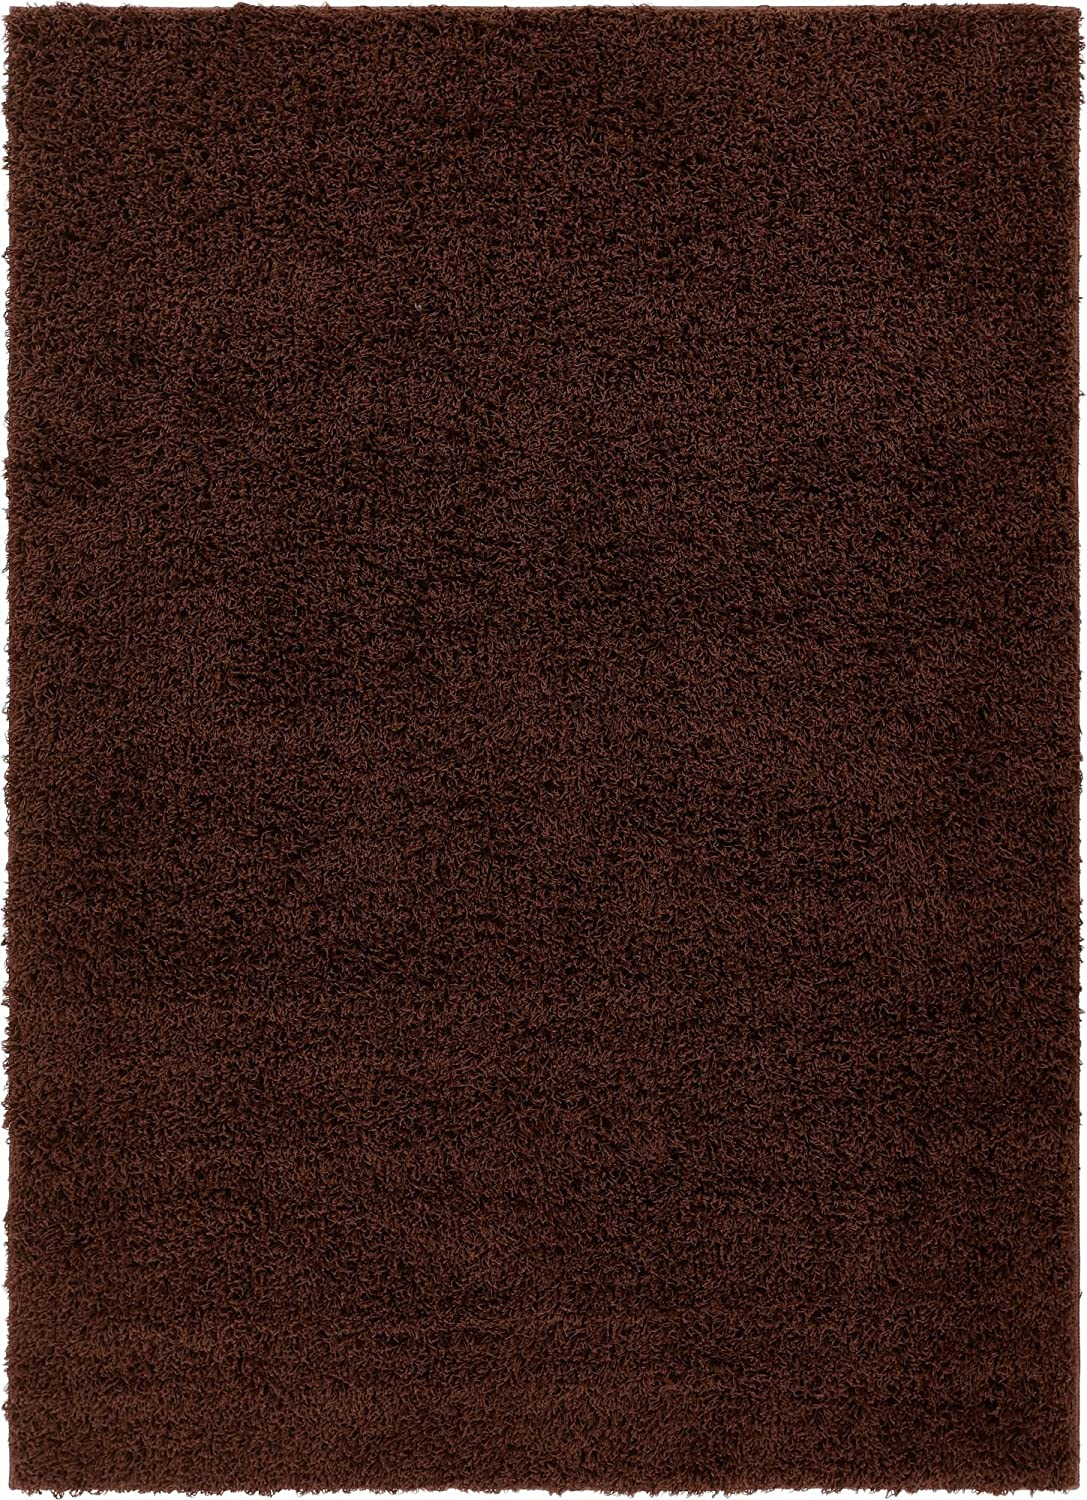 Well Woven TA-18-2 Enchanting Pistachio Modern Solid Soft and Fluffy Shag Area Rug 2 x 73 Runner